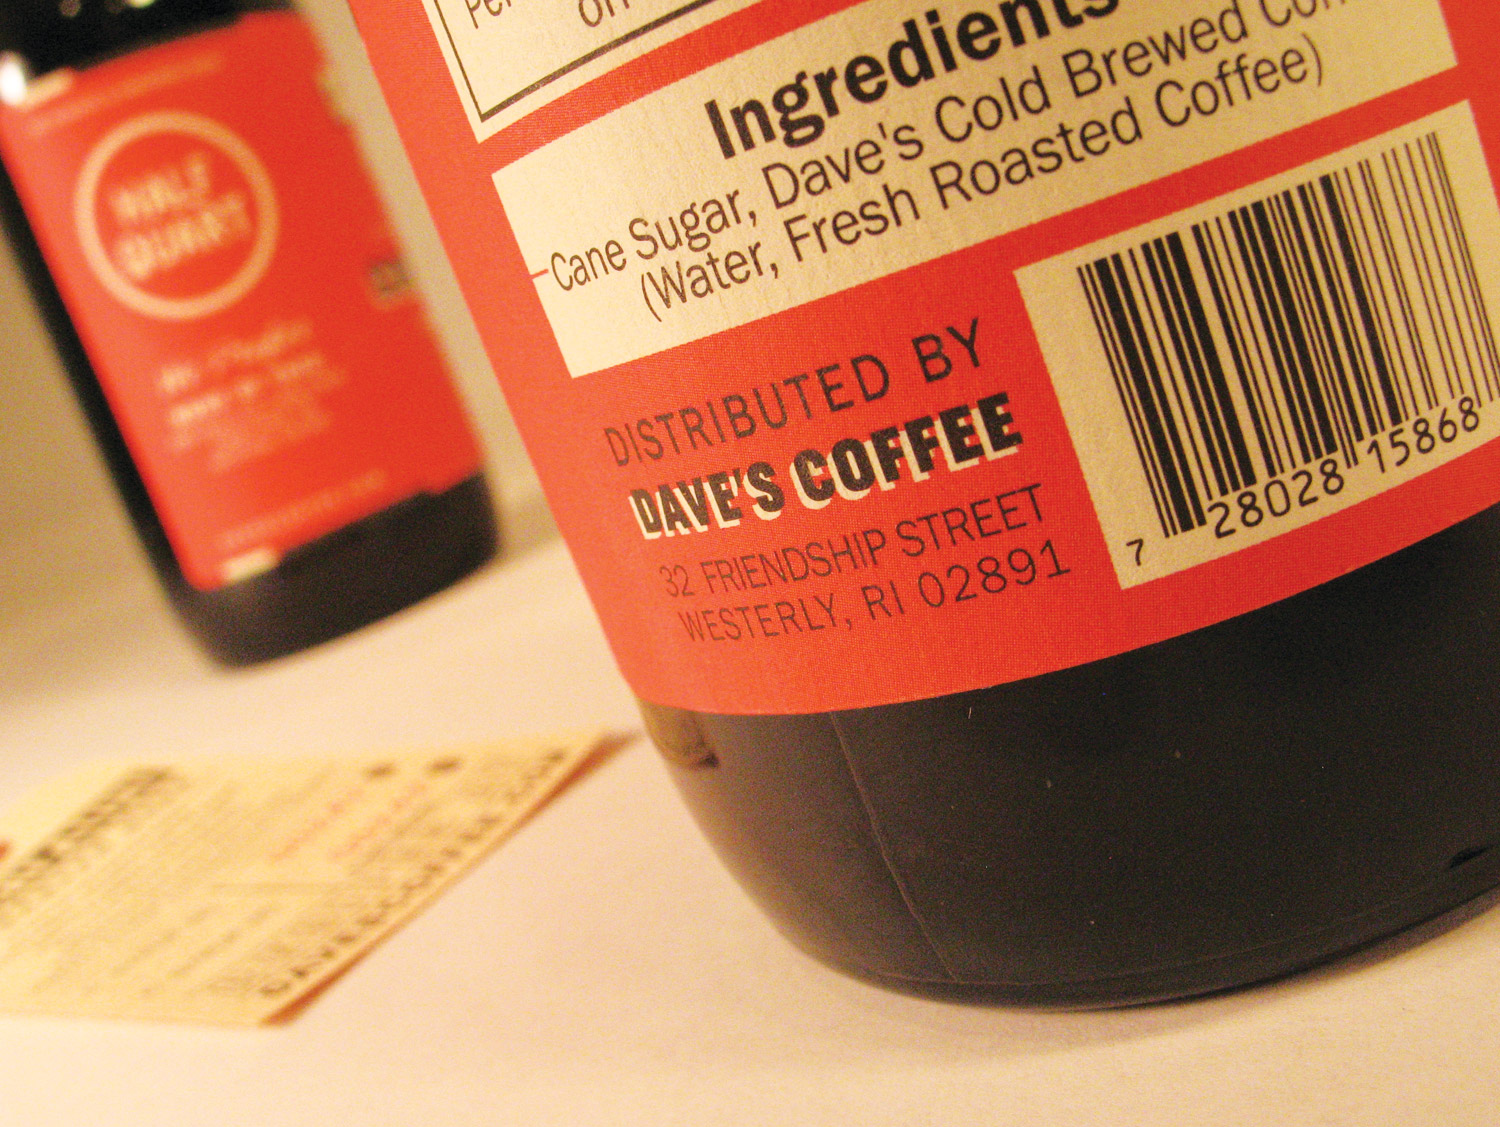 Daves-Coffee-Syrup-Packaging-010.jpg